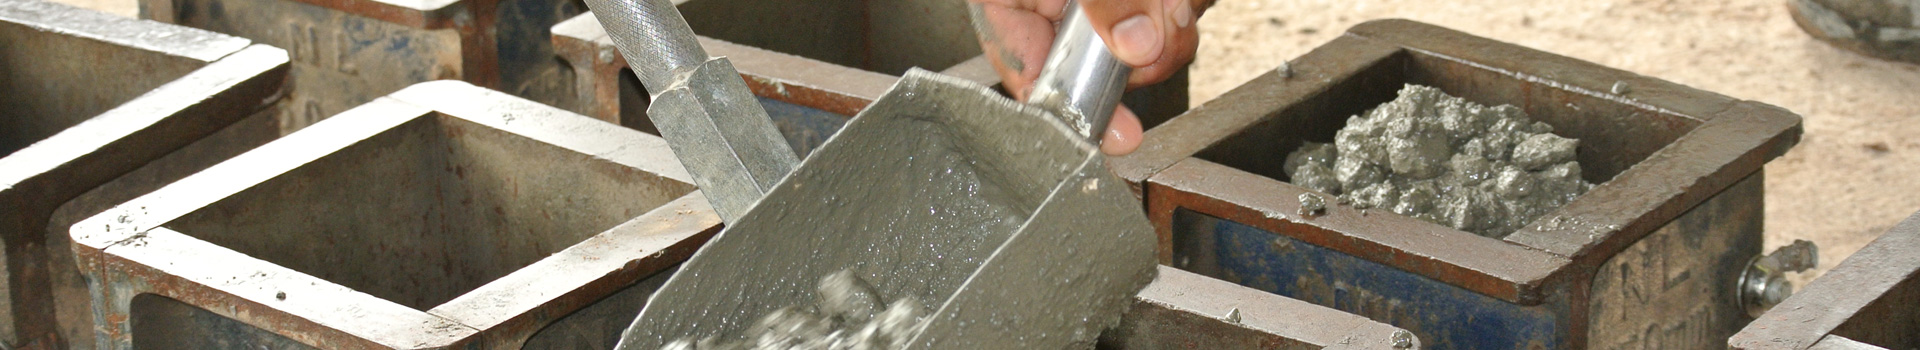 Mattest - Quality Testing for the Construction Industry - Concrete